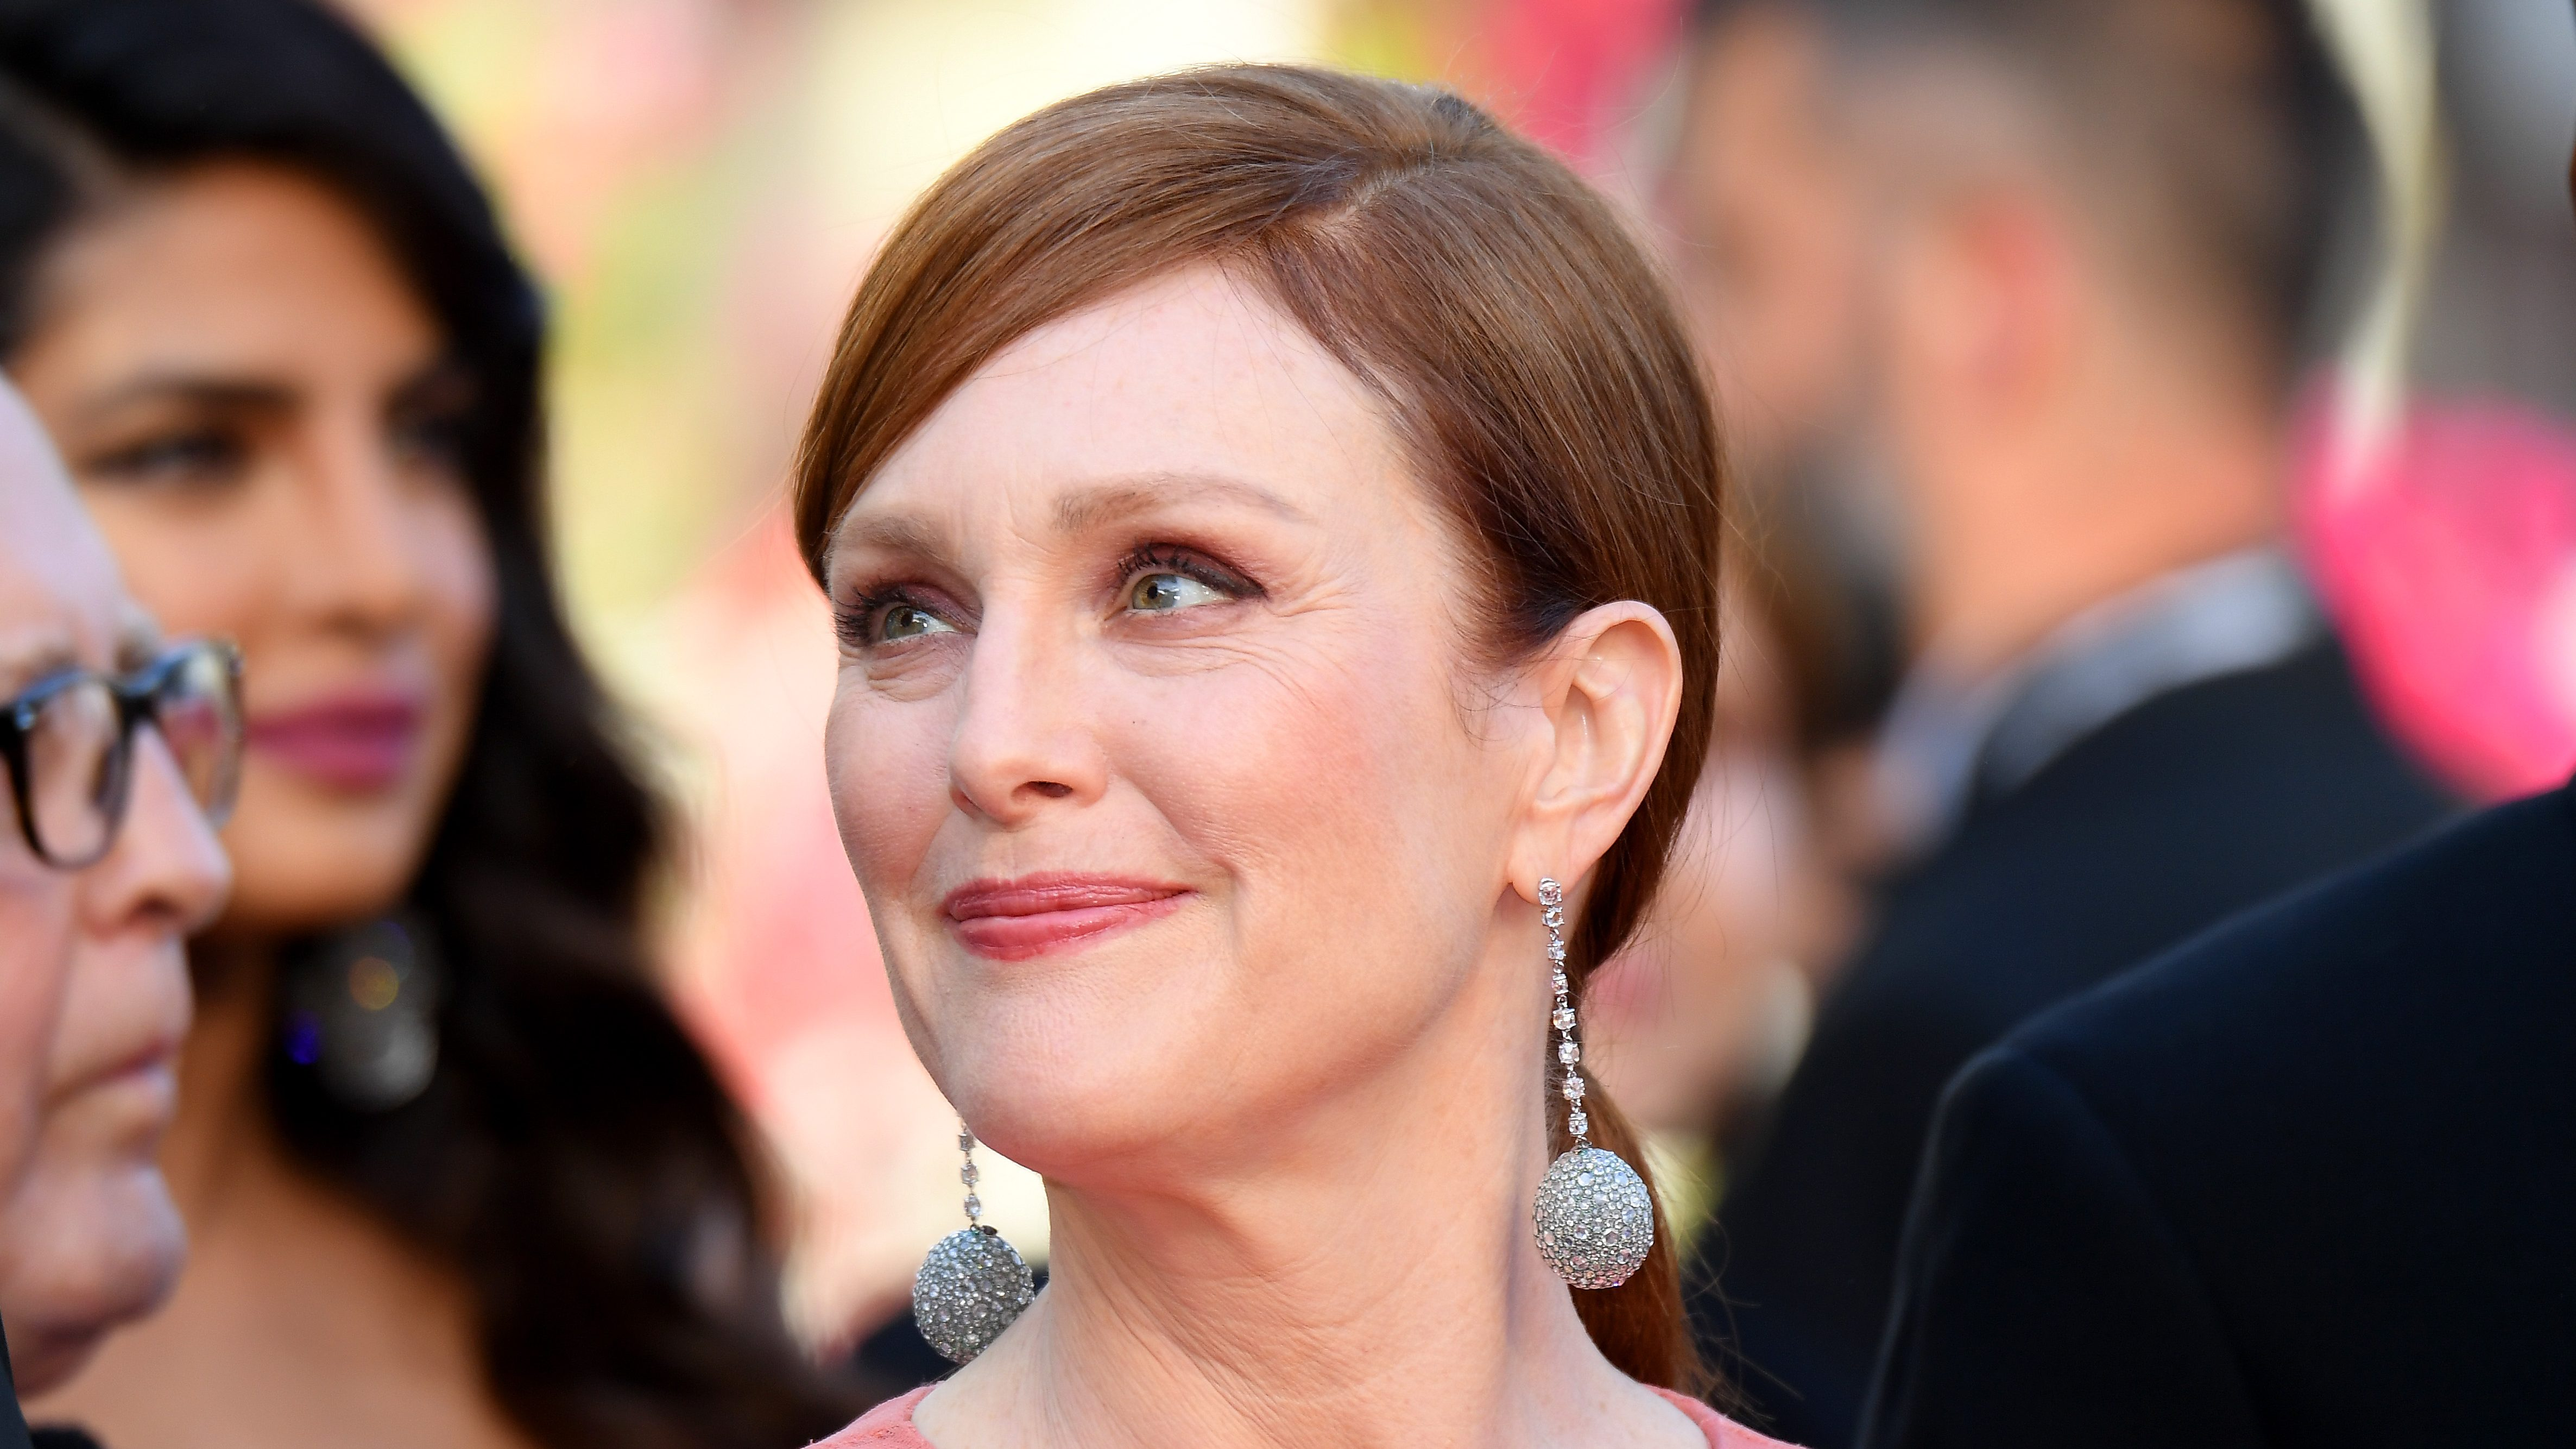 Julianne Moore Reveals That She Always Hated Her Freckles and Still Does: 'I'd Prefer Not to Have Them'